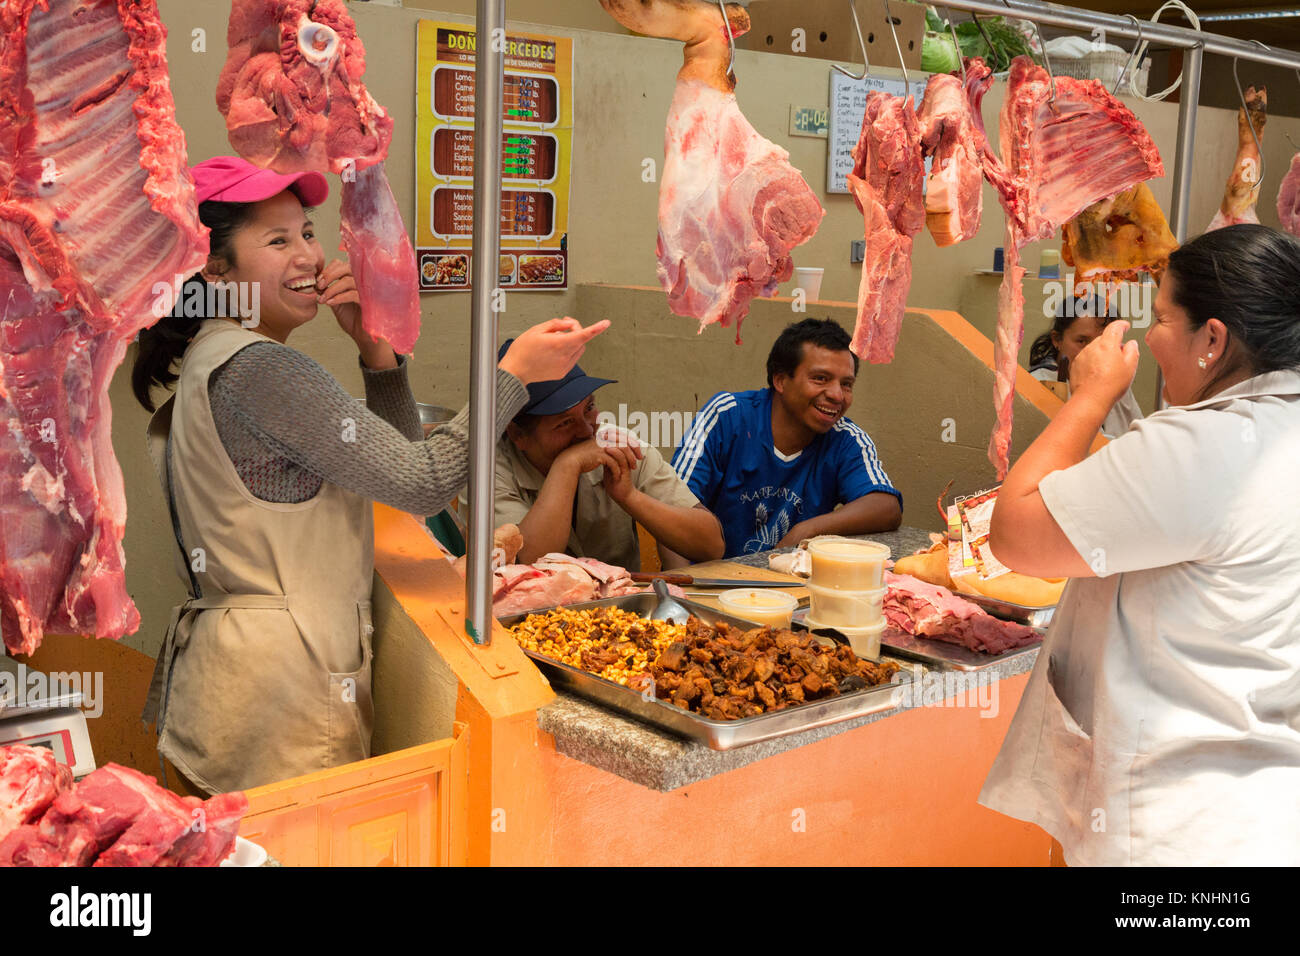 meat market stock images - photo #48